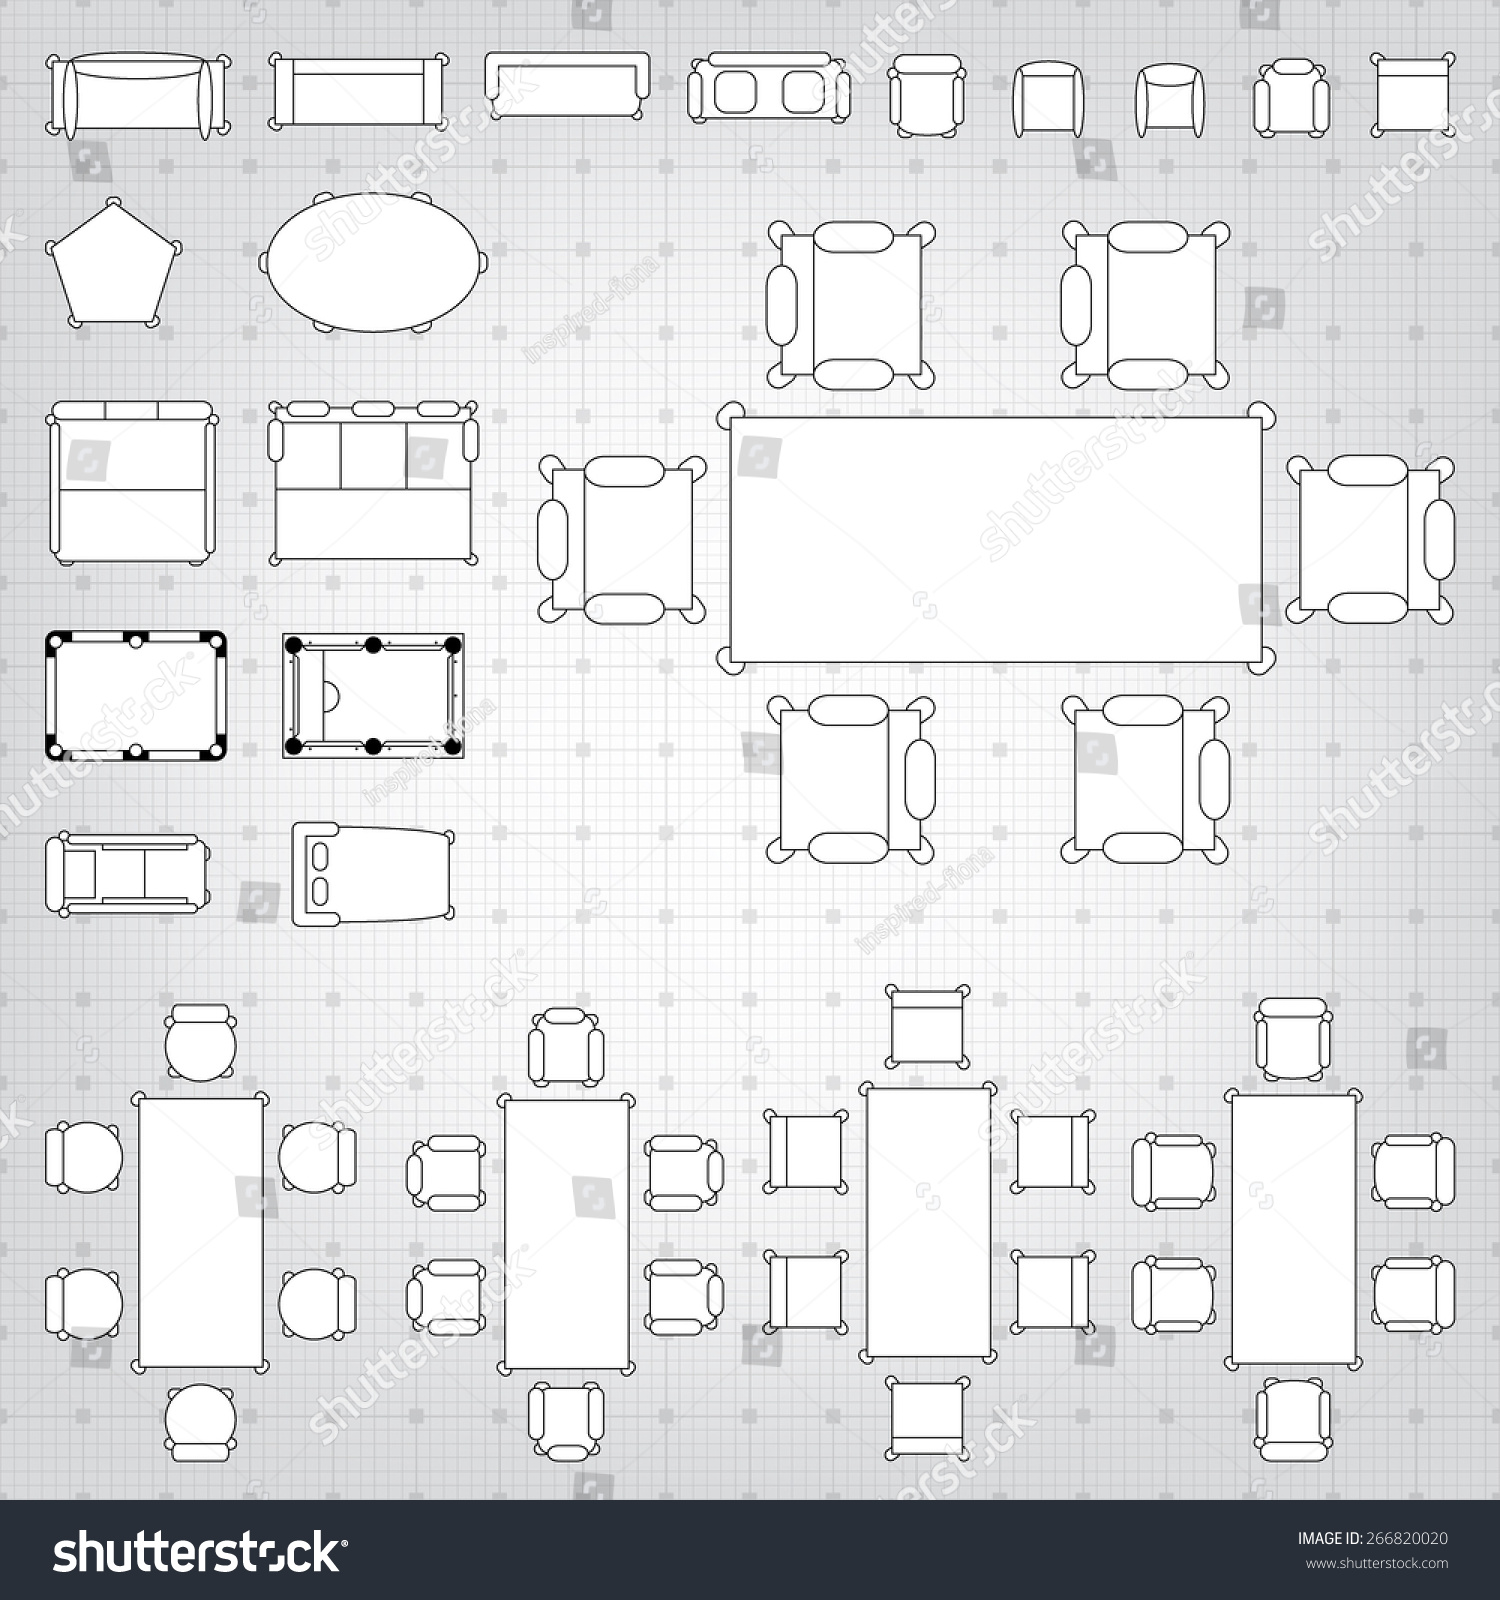 Blueprint Interior Design Set royaltyfree set of simple 2d flat vector icons… 266820020 stock